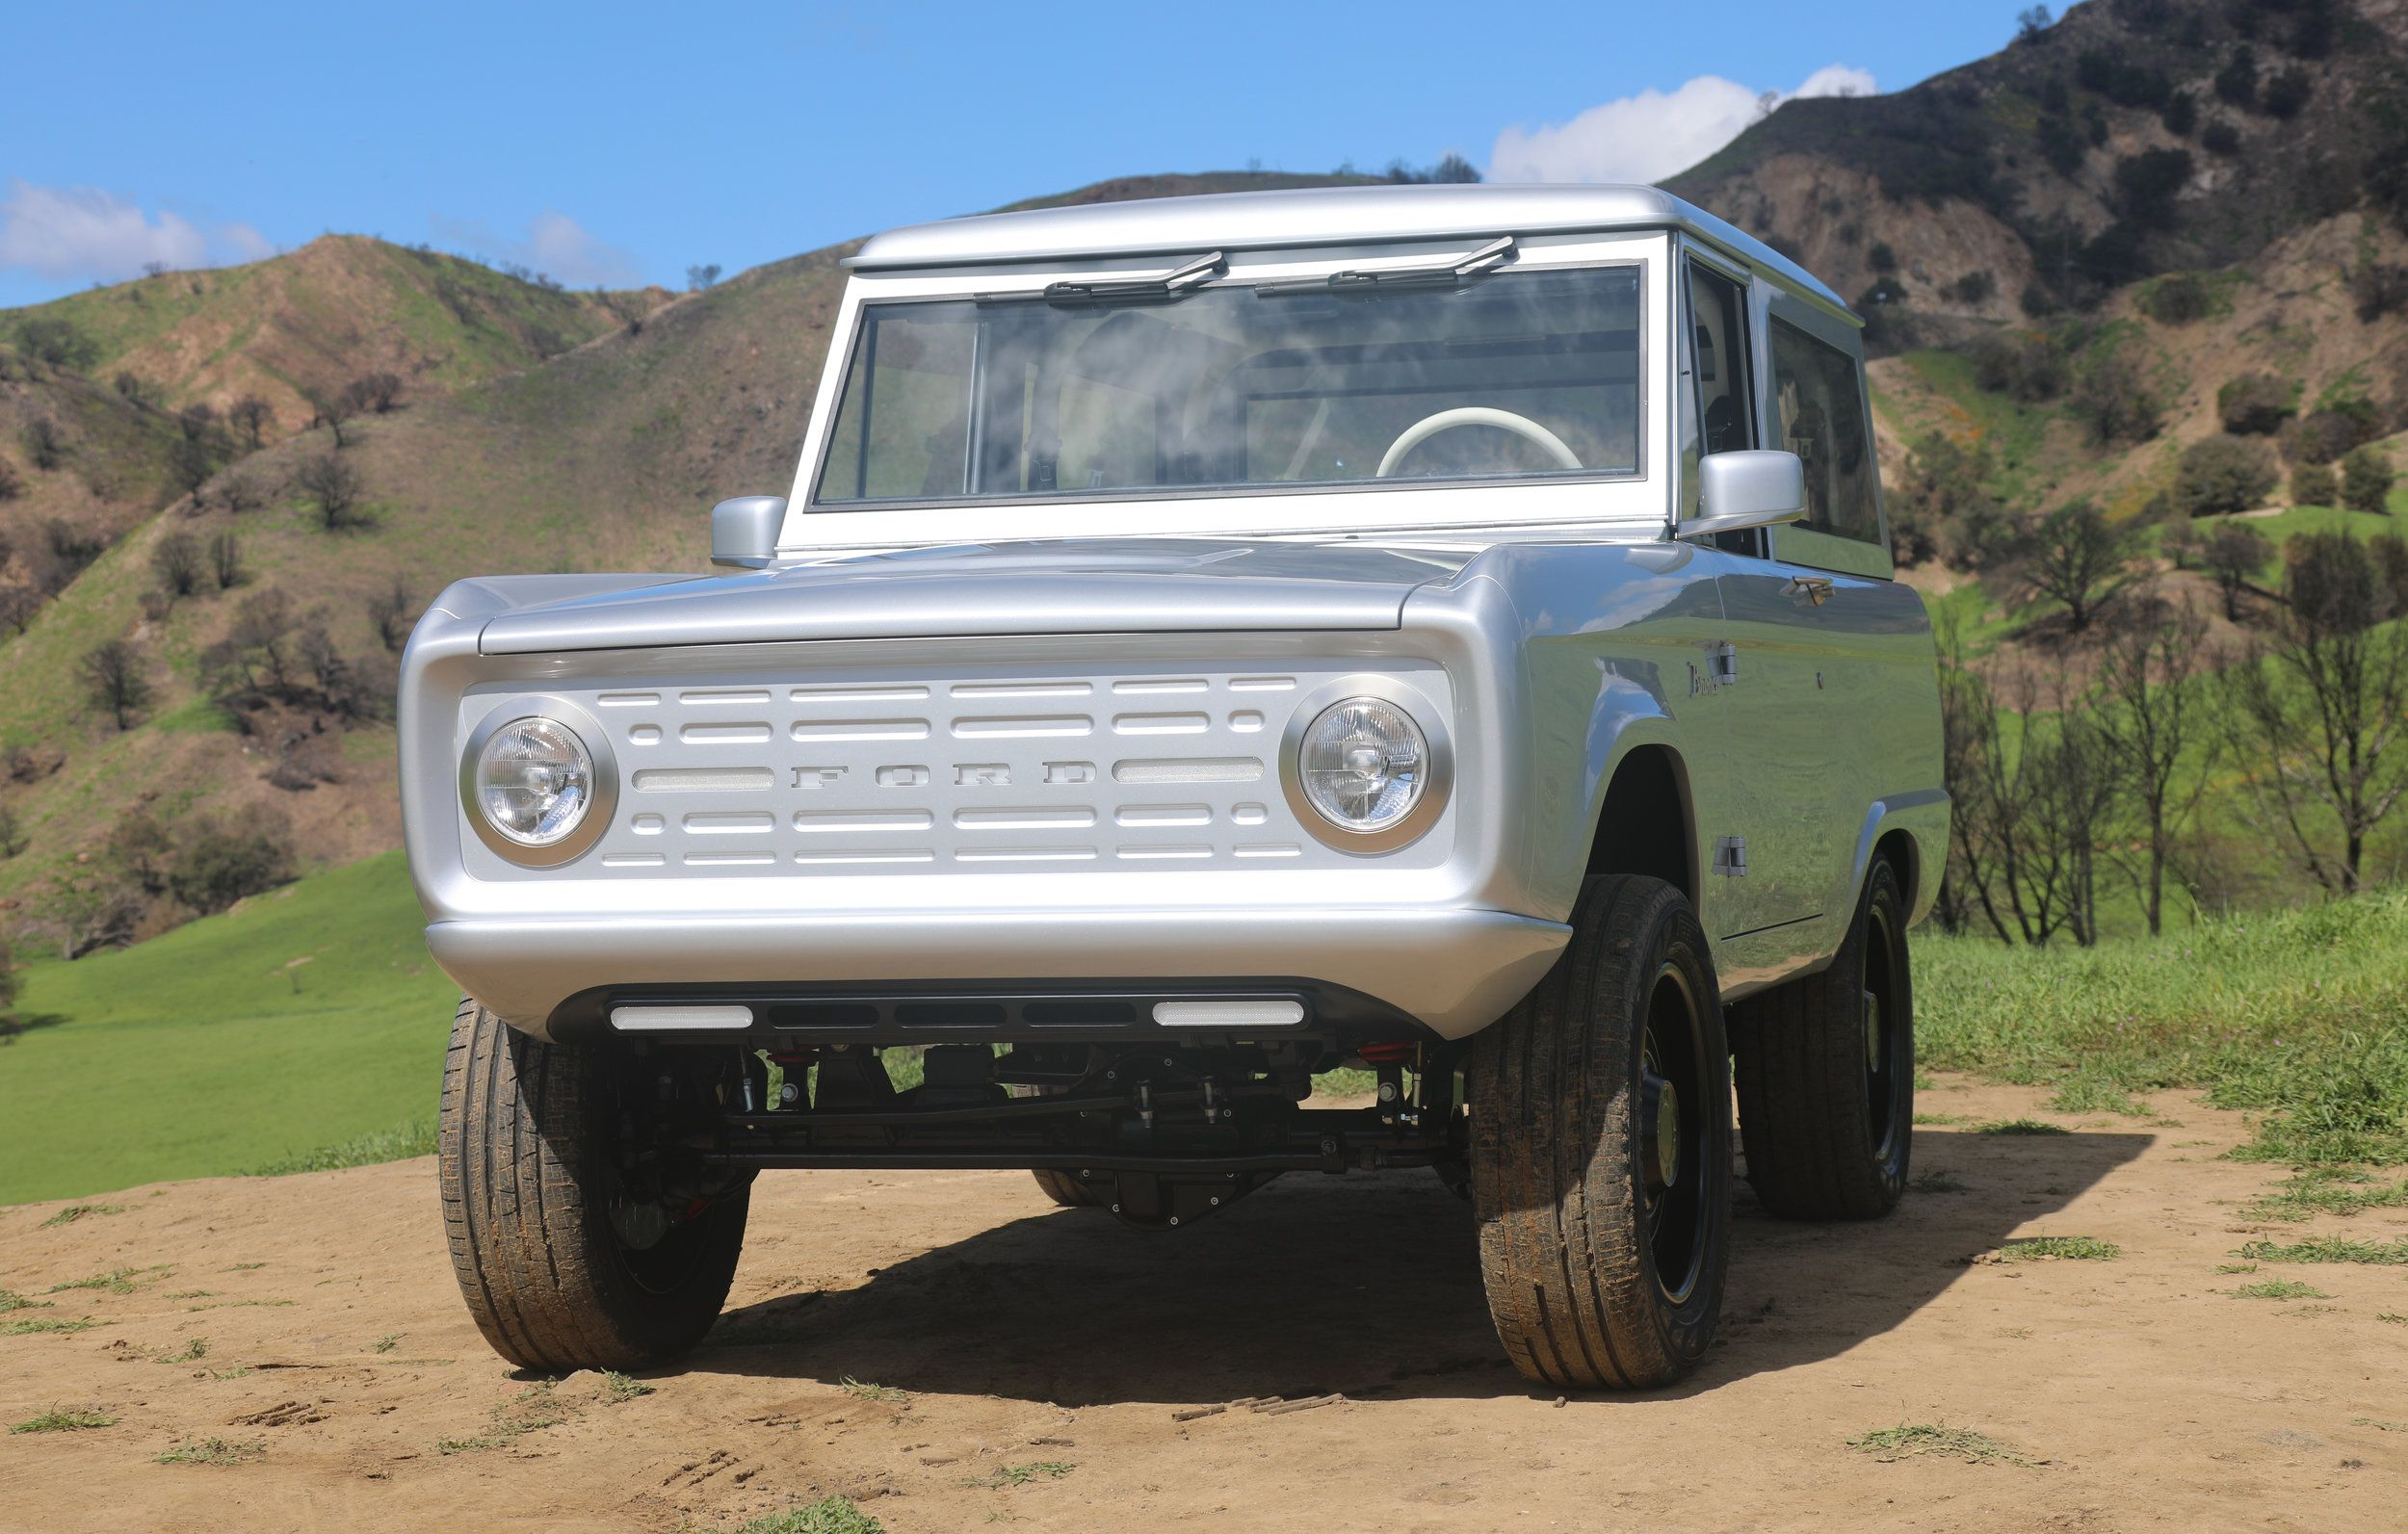 The World S First All Electric Ford Bronco Looks Straight Out Of The Future Life Videos Ford Bronco Classic Ford Broncos Bronco